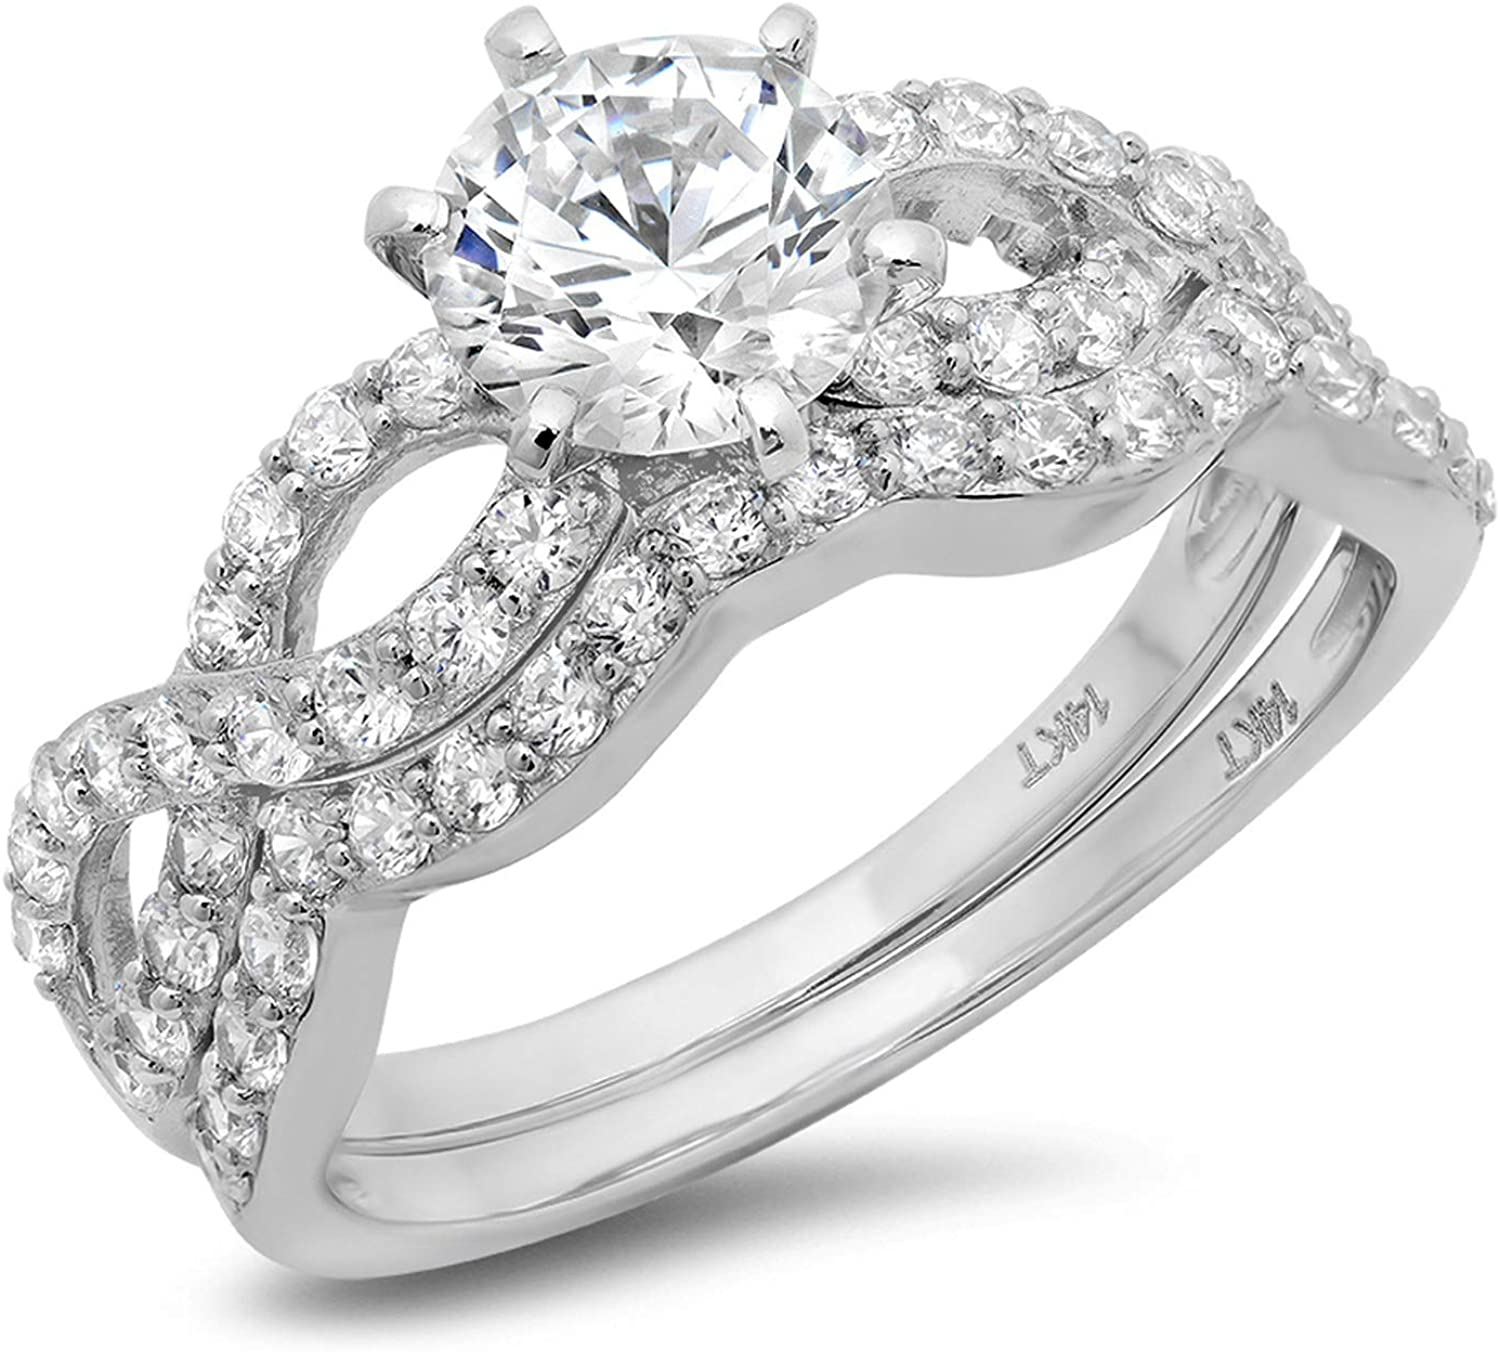 1.49ct Round Cut Halo Max 67% OFF Pave Solitaire Split Shank VVS1 Popular popular Accent Ide